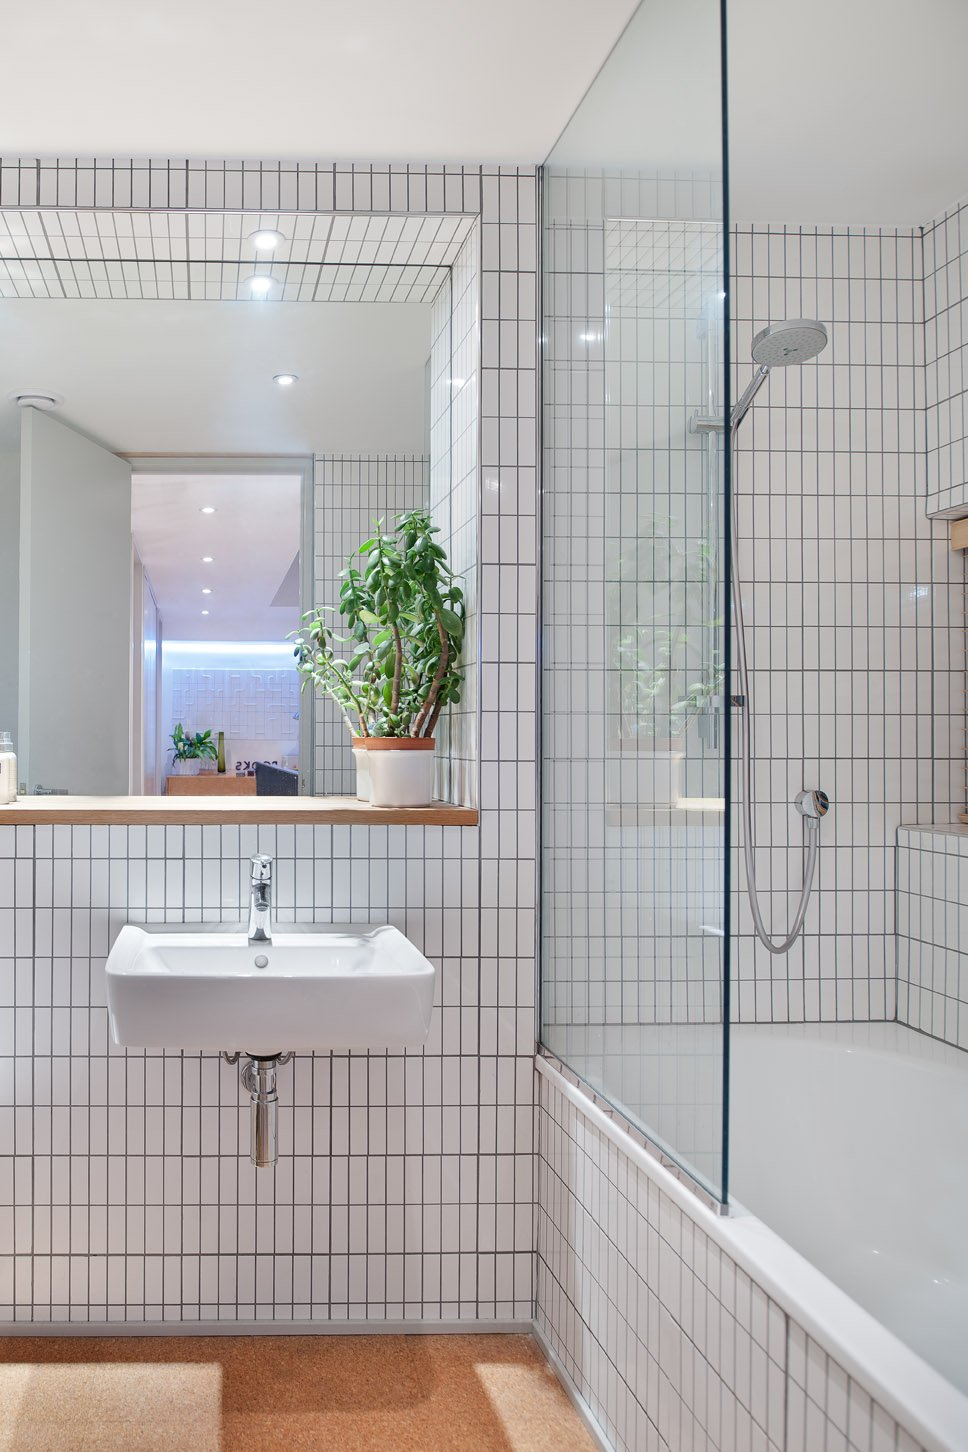 """Bath Room, Drop In Tub, and Wall Mount Sink With the freedom to do what she wanted in her own home renovation English Designer Kathryn Tyler explained, """"I put everything that I've always loved into this house,"""" including white tiles edged with gray grout in the bathroom, a design move previous clients had balked at."""